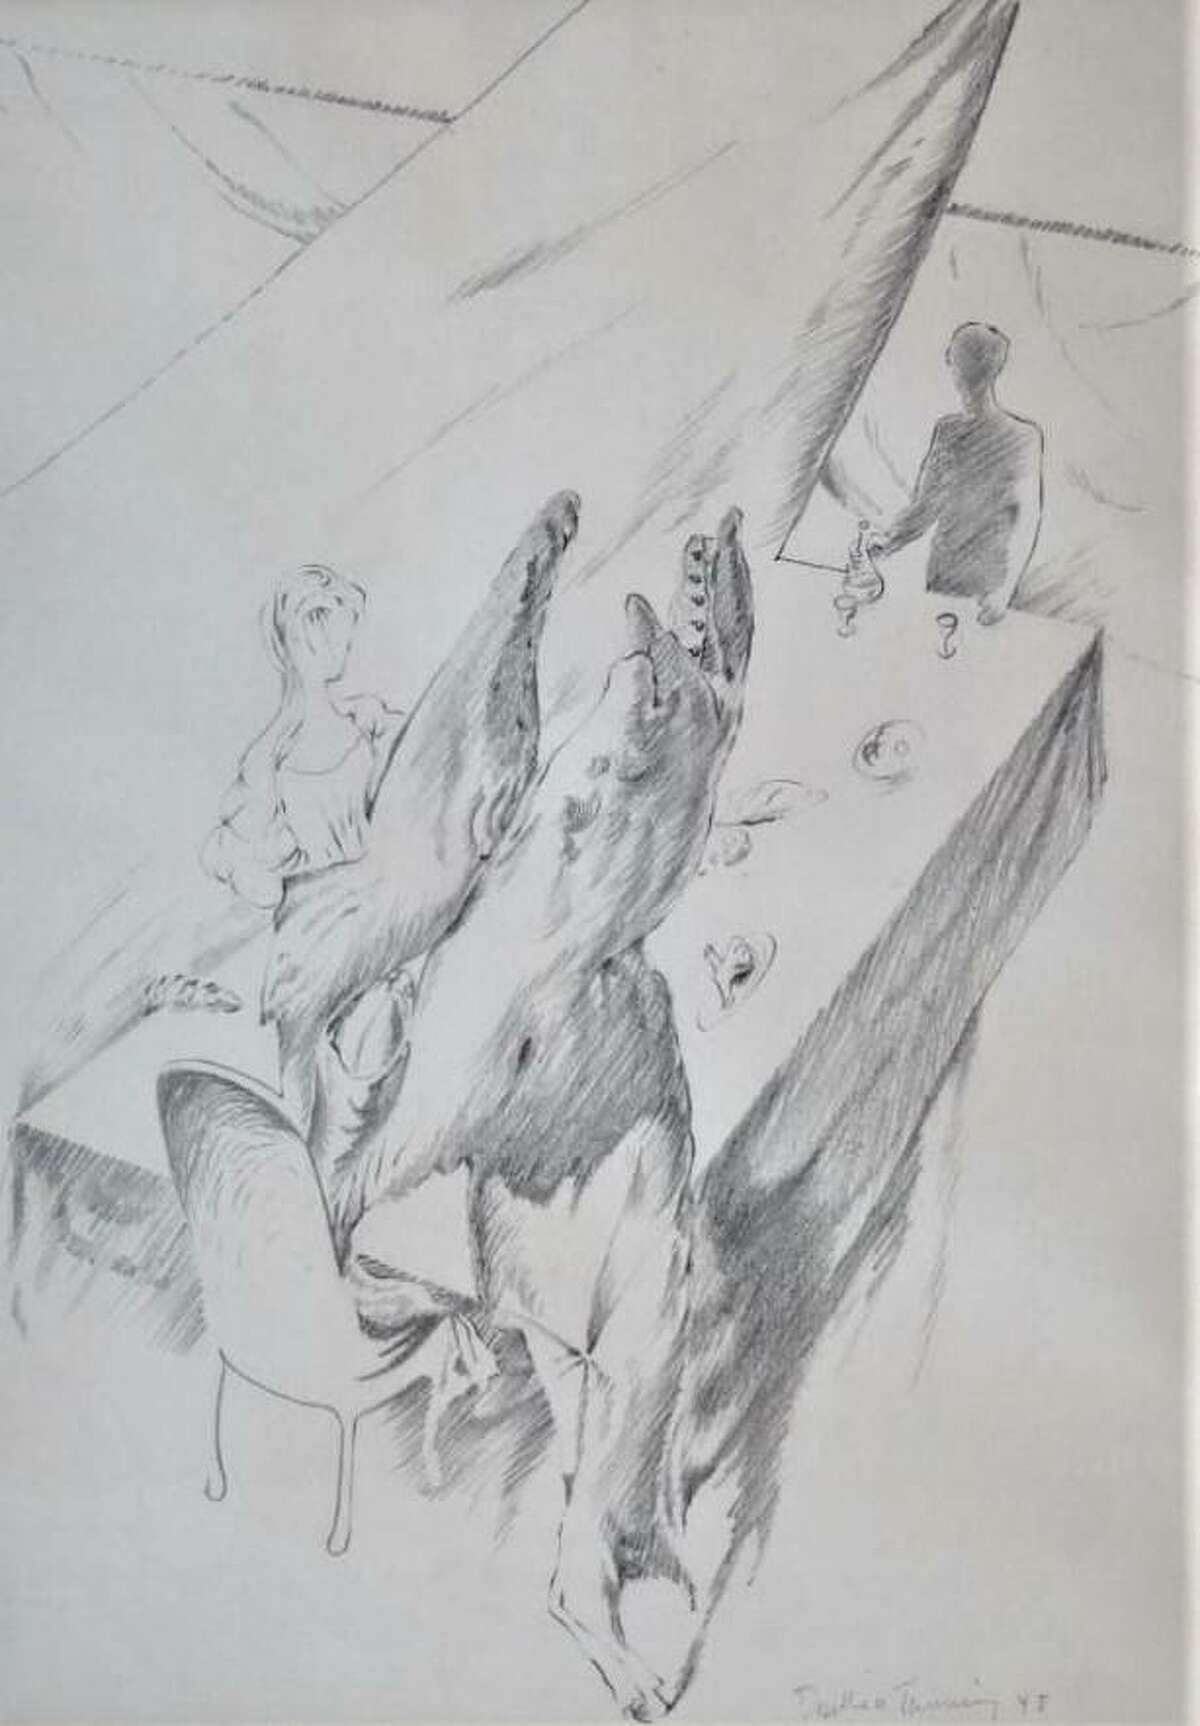 """Dorothea Tanning's pencil study for """"My Dinner Party"""" is on view in """"Women Surrealists"""" at Redbud Gallery through Aug. 27."""